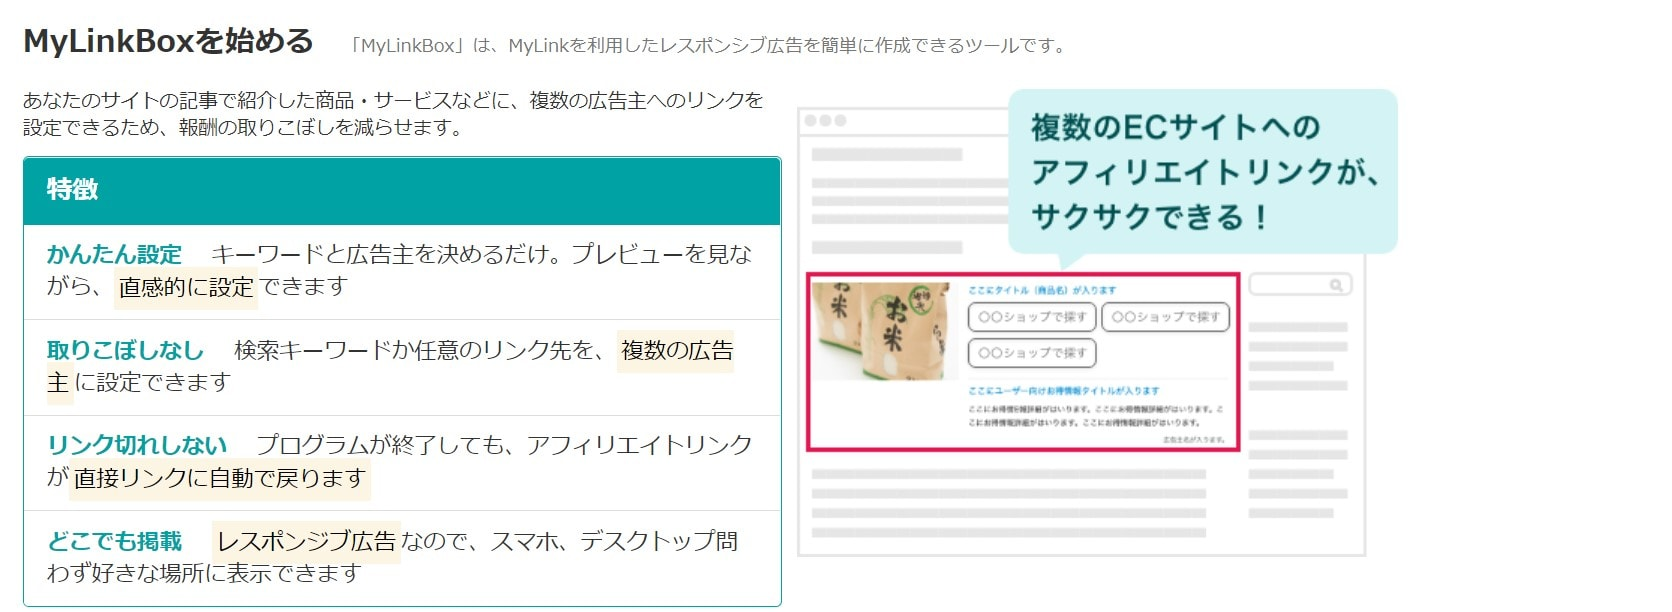 MyLinkBox